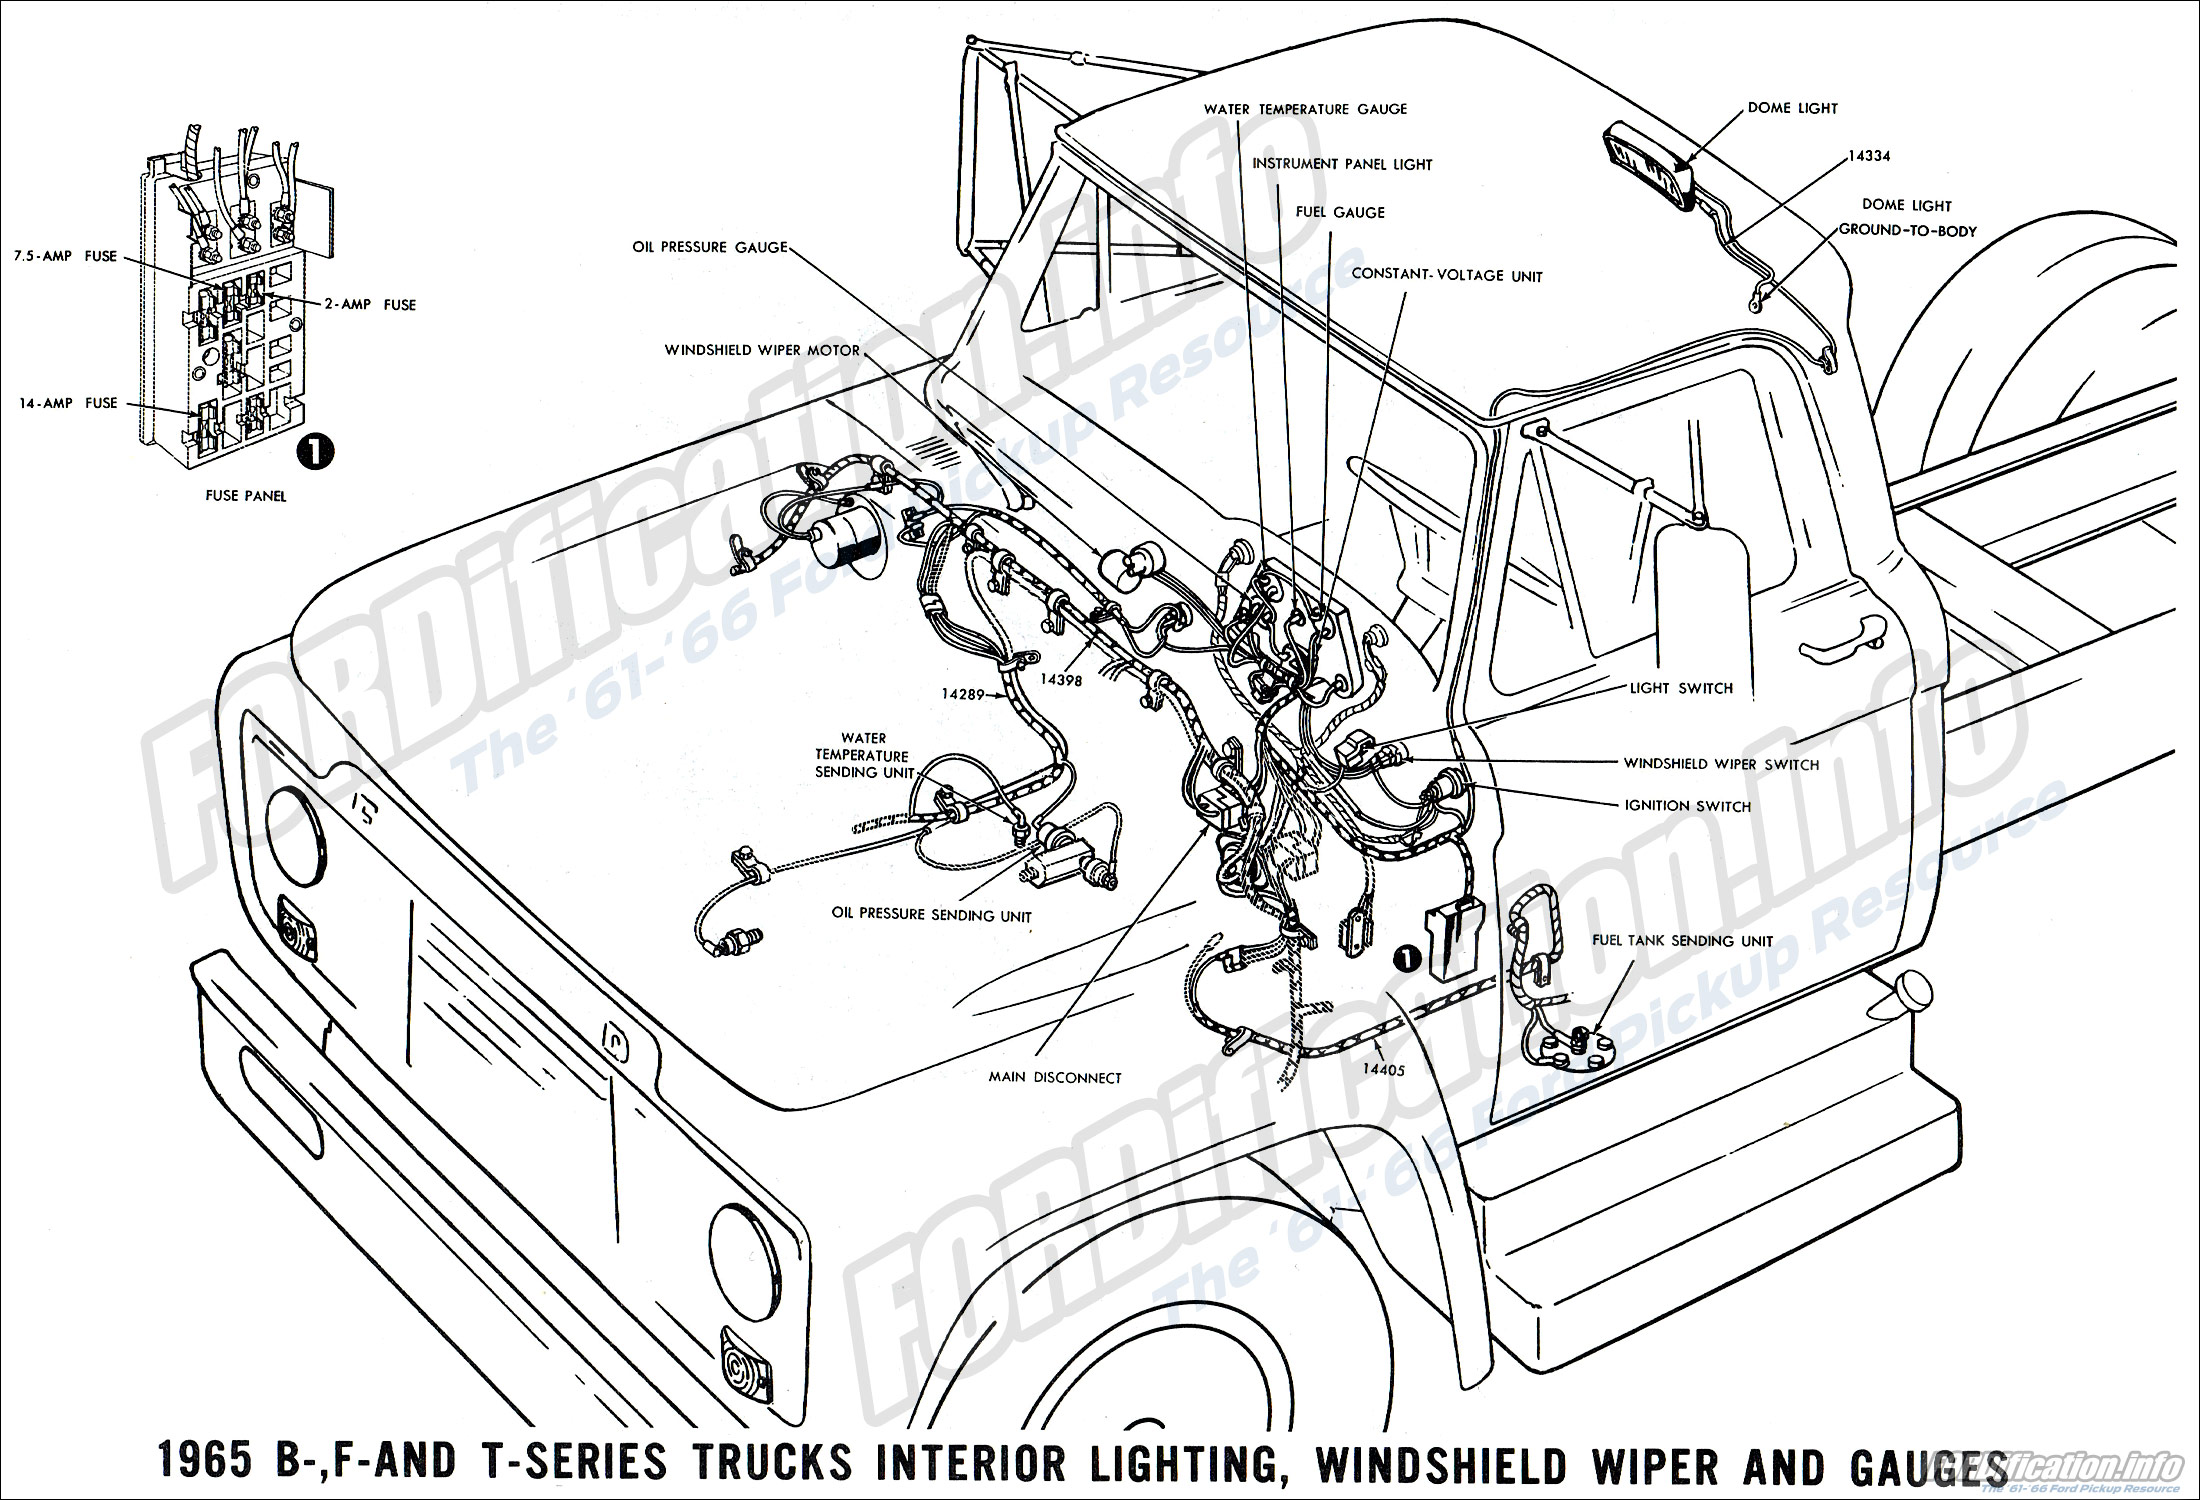 old ford truck drawing at getdrawings free for personal use Diagrams Wire Diagrams Ford F-150 2200x1500 lovely pickup truck diagram photos